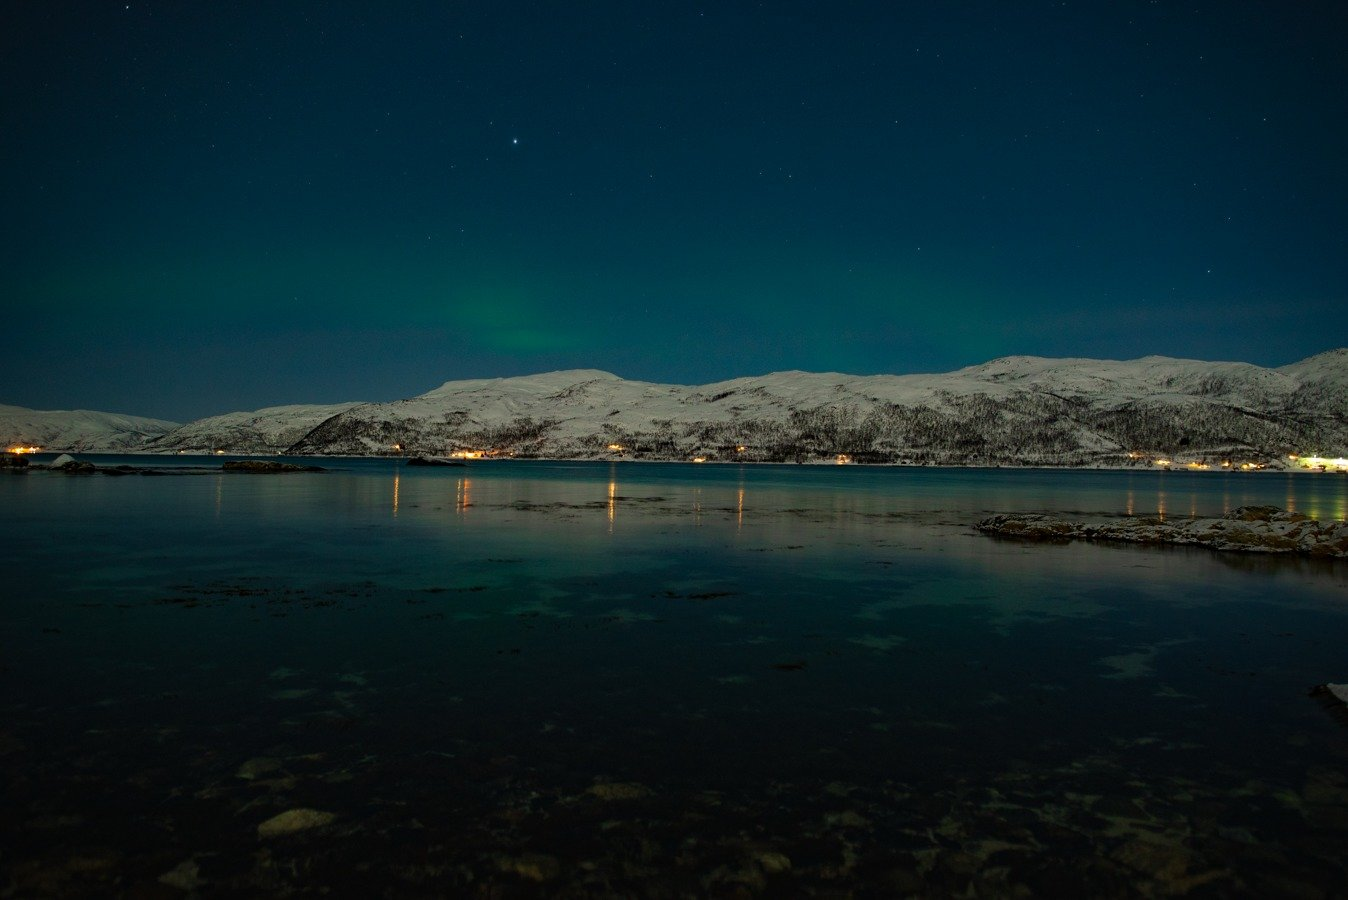 How to see the Northern Lights in Tromso